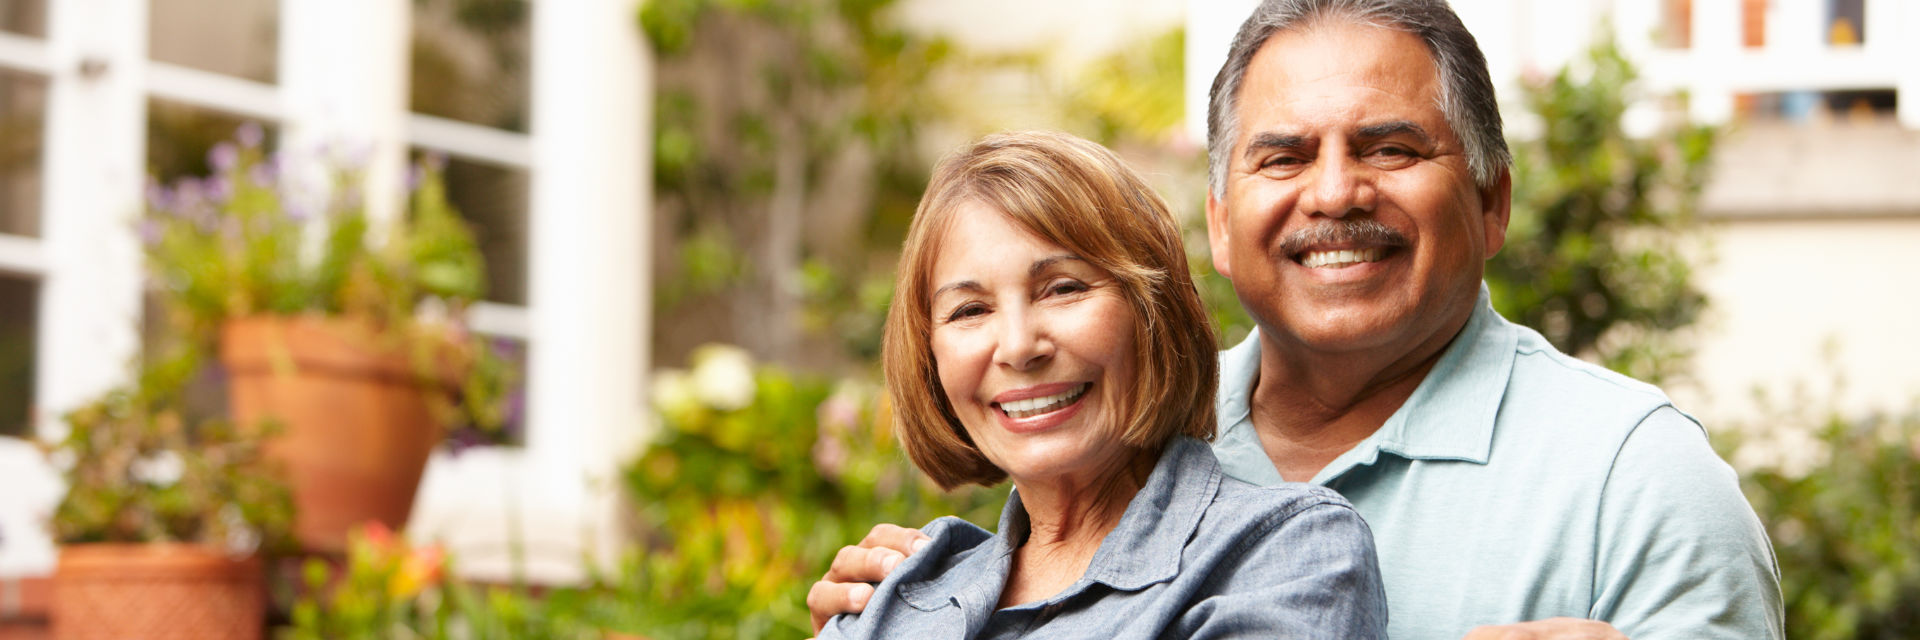 A happy senior Hispanic couple with perfect smiles in front of their house.